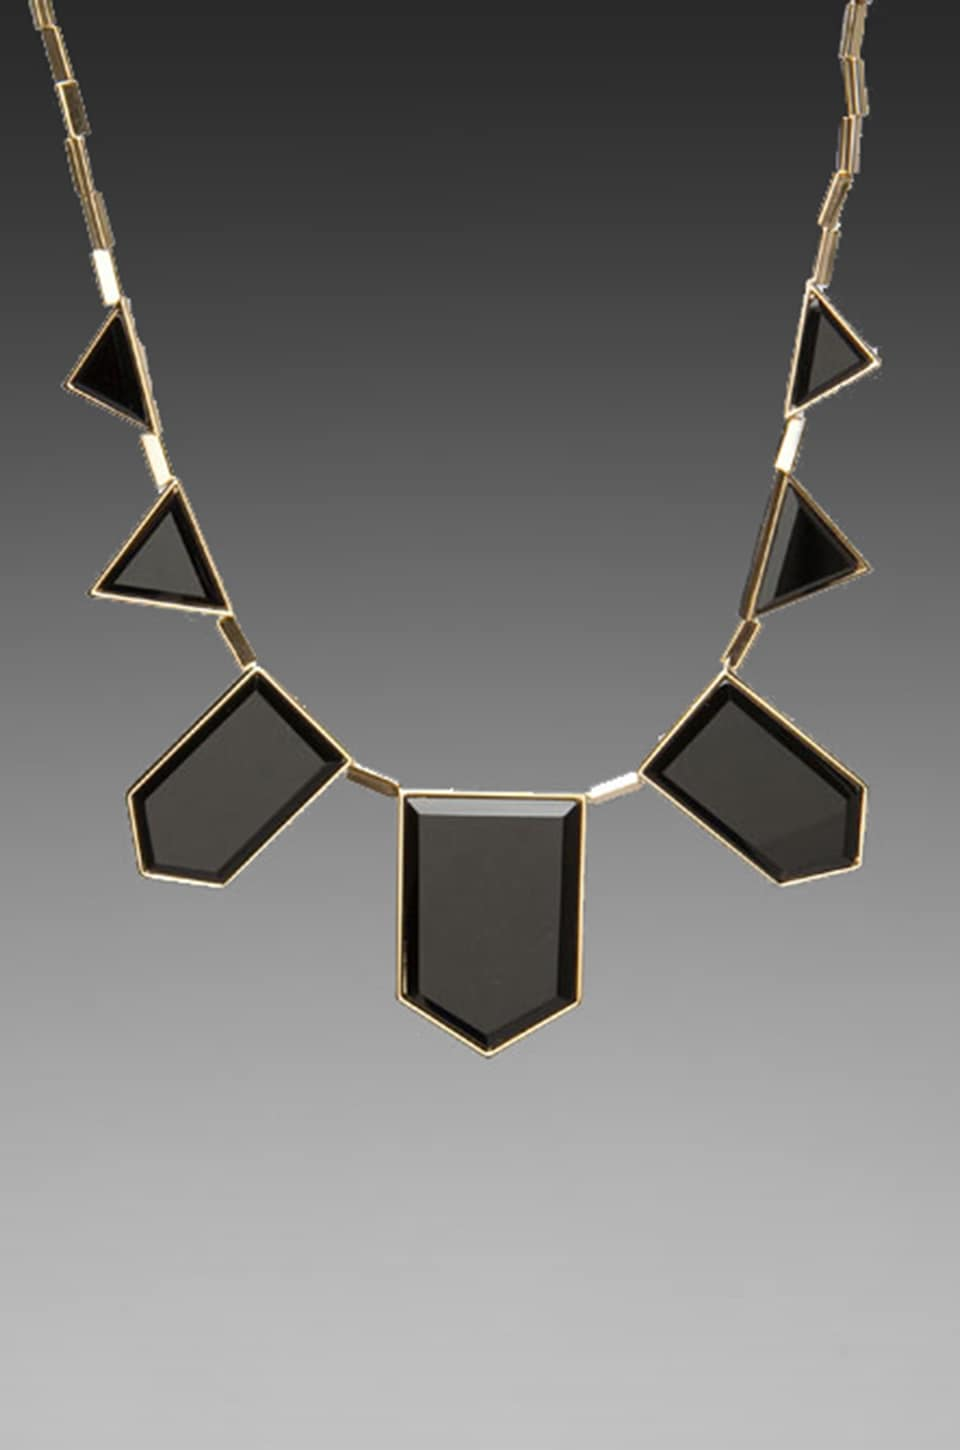 House of Harlow 1960 House of Harlow Black Resin Necklace